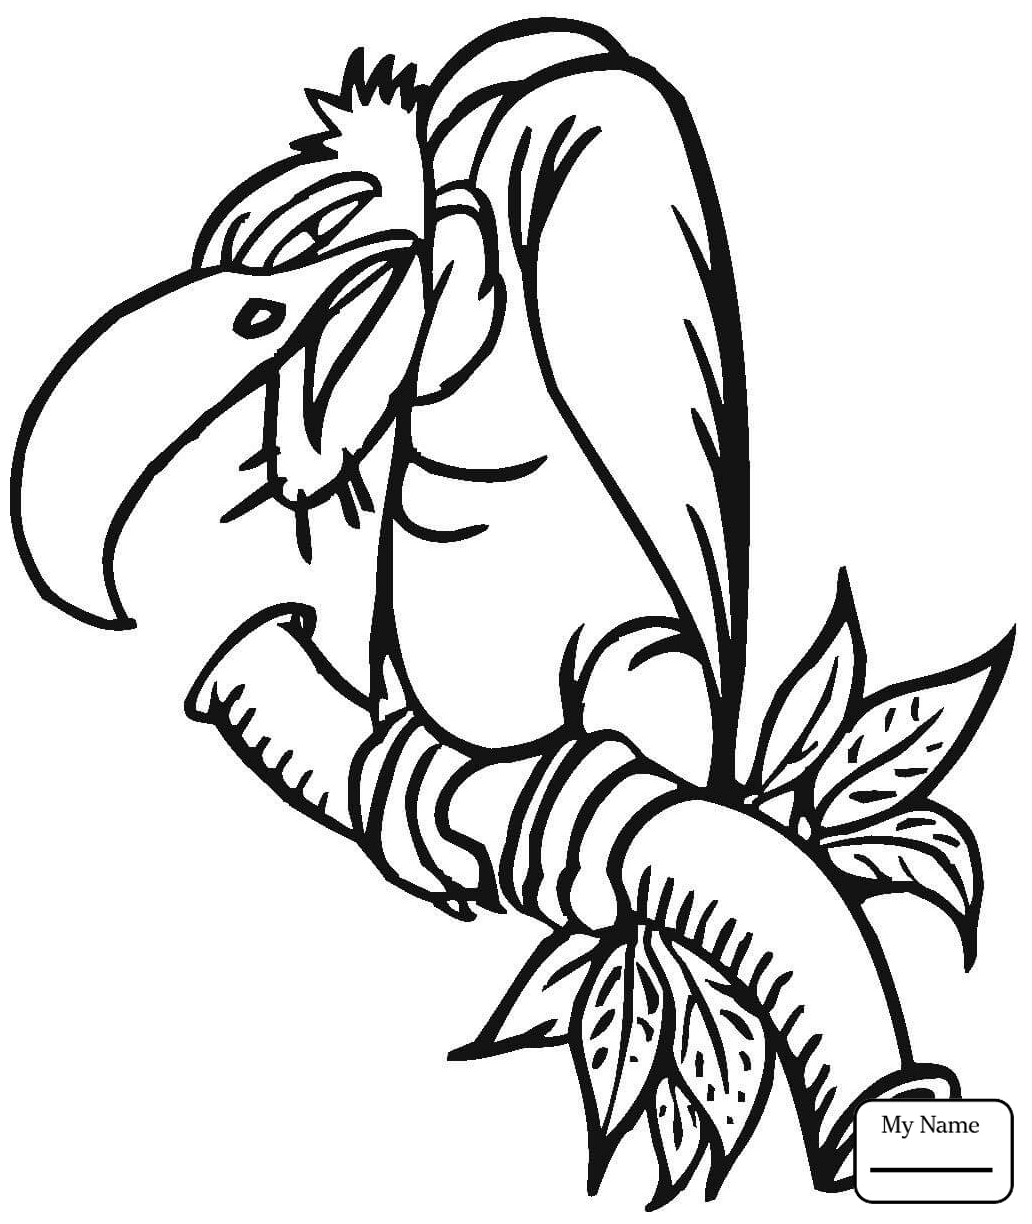 1032x1224 Vulture Birds Vultures Coloring Pages For Kids Free Page To Print